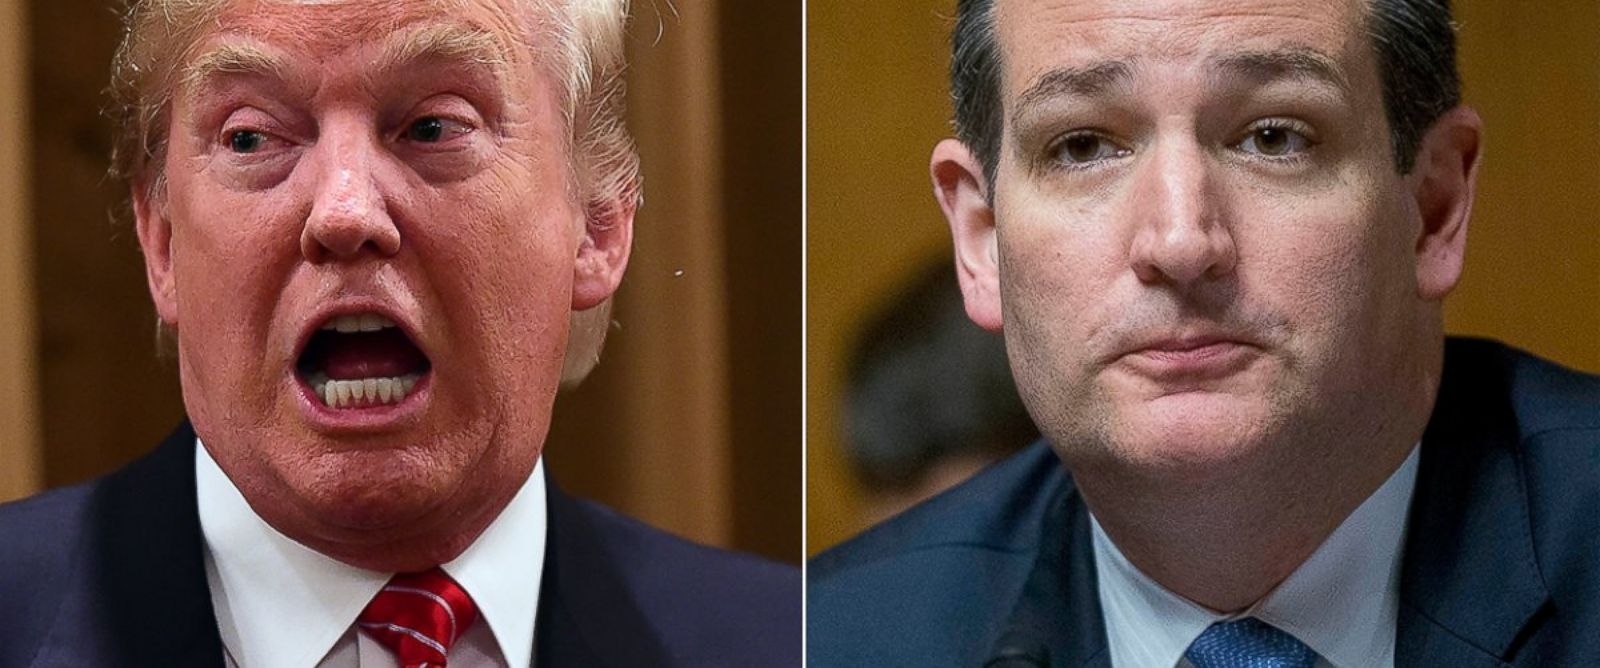 PHOTO: Donald Trump, left, is pictured on July 10, 2015 in Beverly Hills, Calif. Ted Cruz, right, is pictured in Washington, D.C. on June 4, 2015.